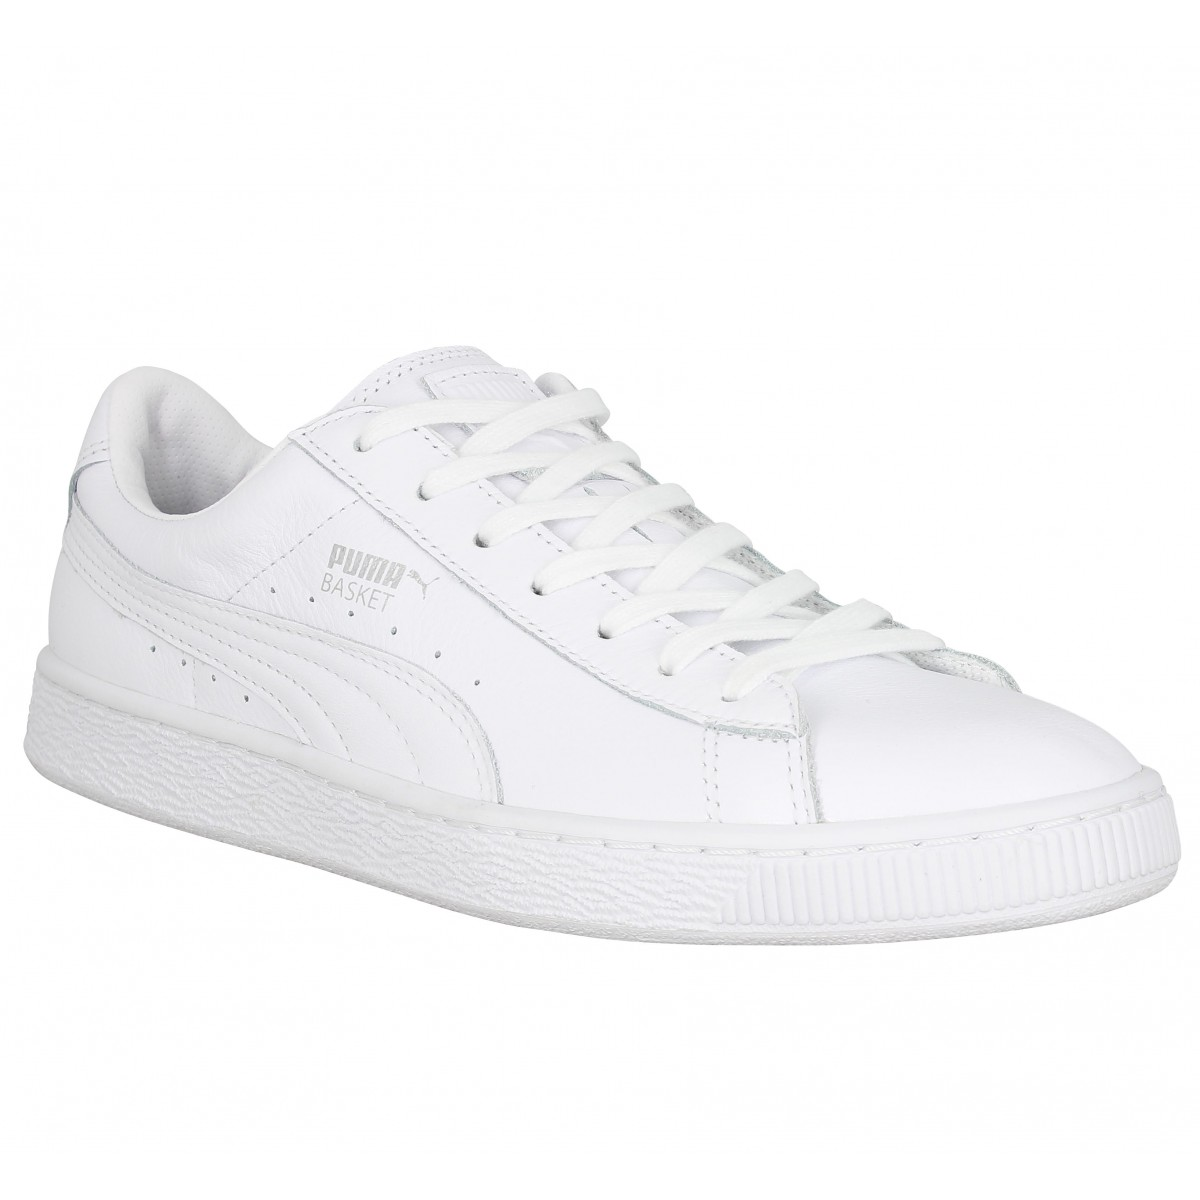 Puma Basket Classic Toile En Reduction Baskets Puma Homme